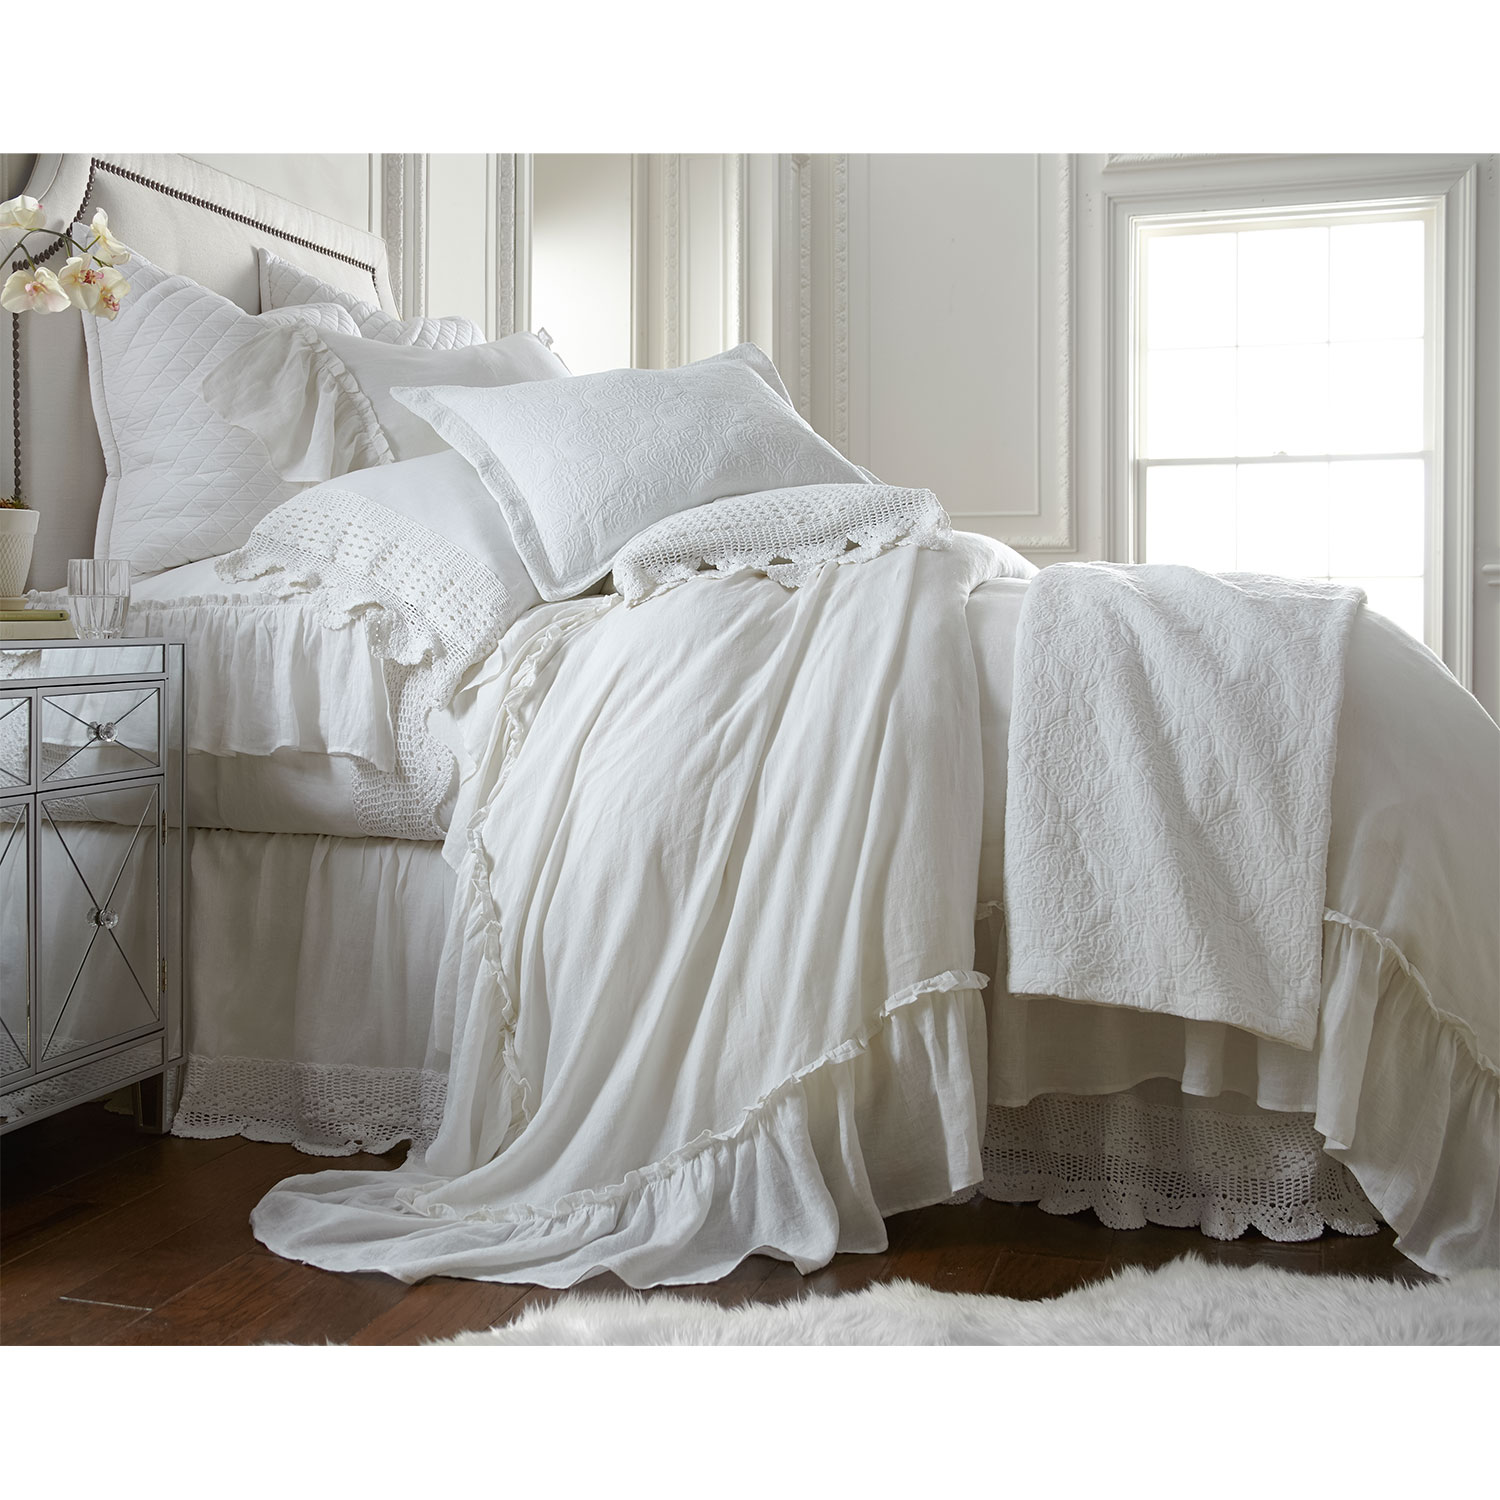 Accent and Occasional Furniture - Caprice King Duvet Cover - White